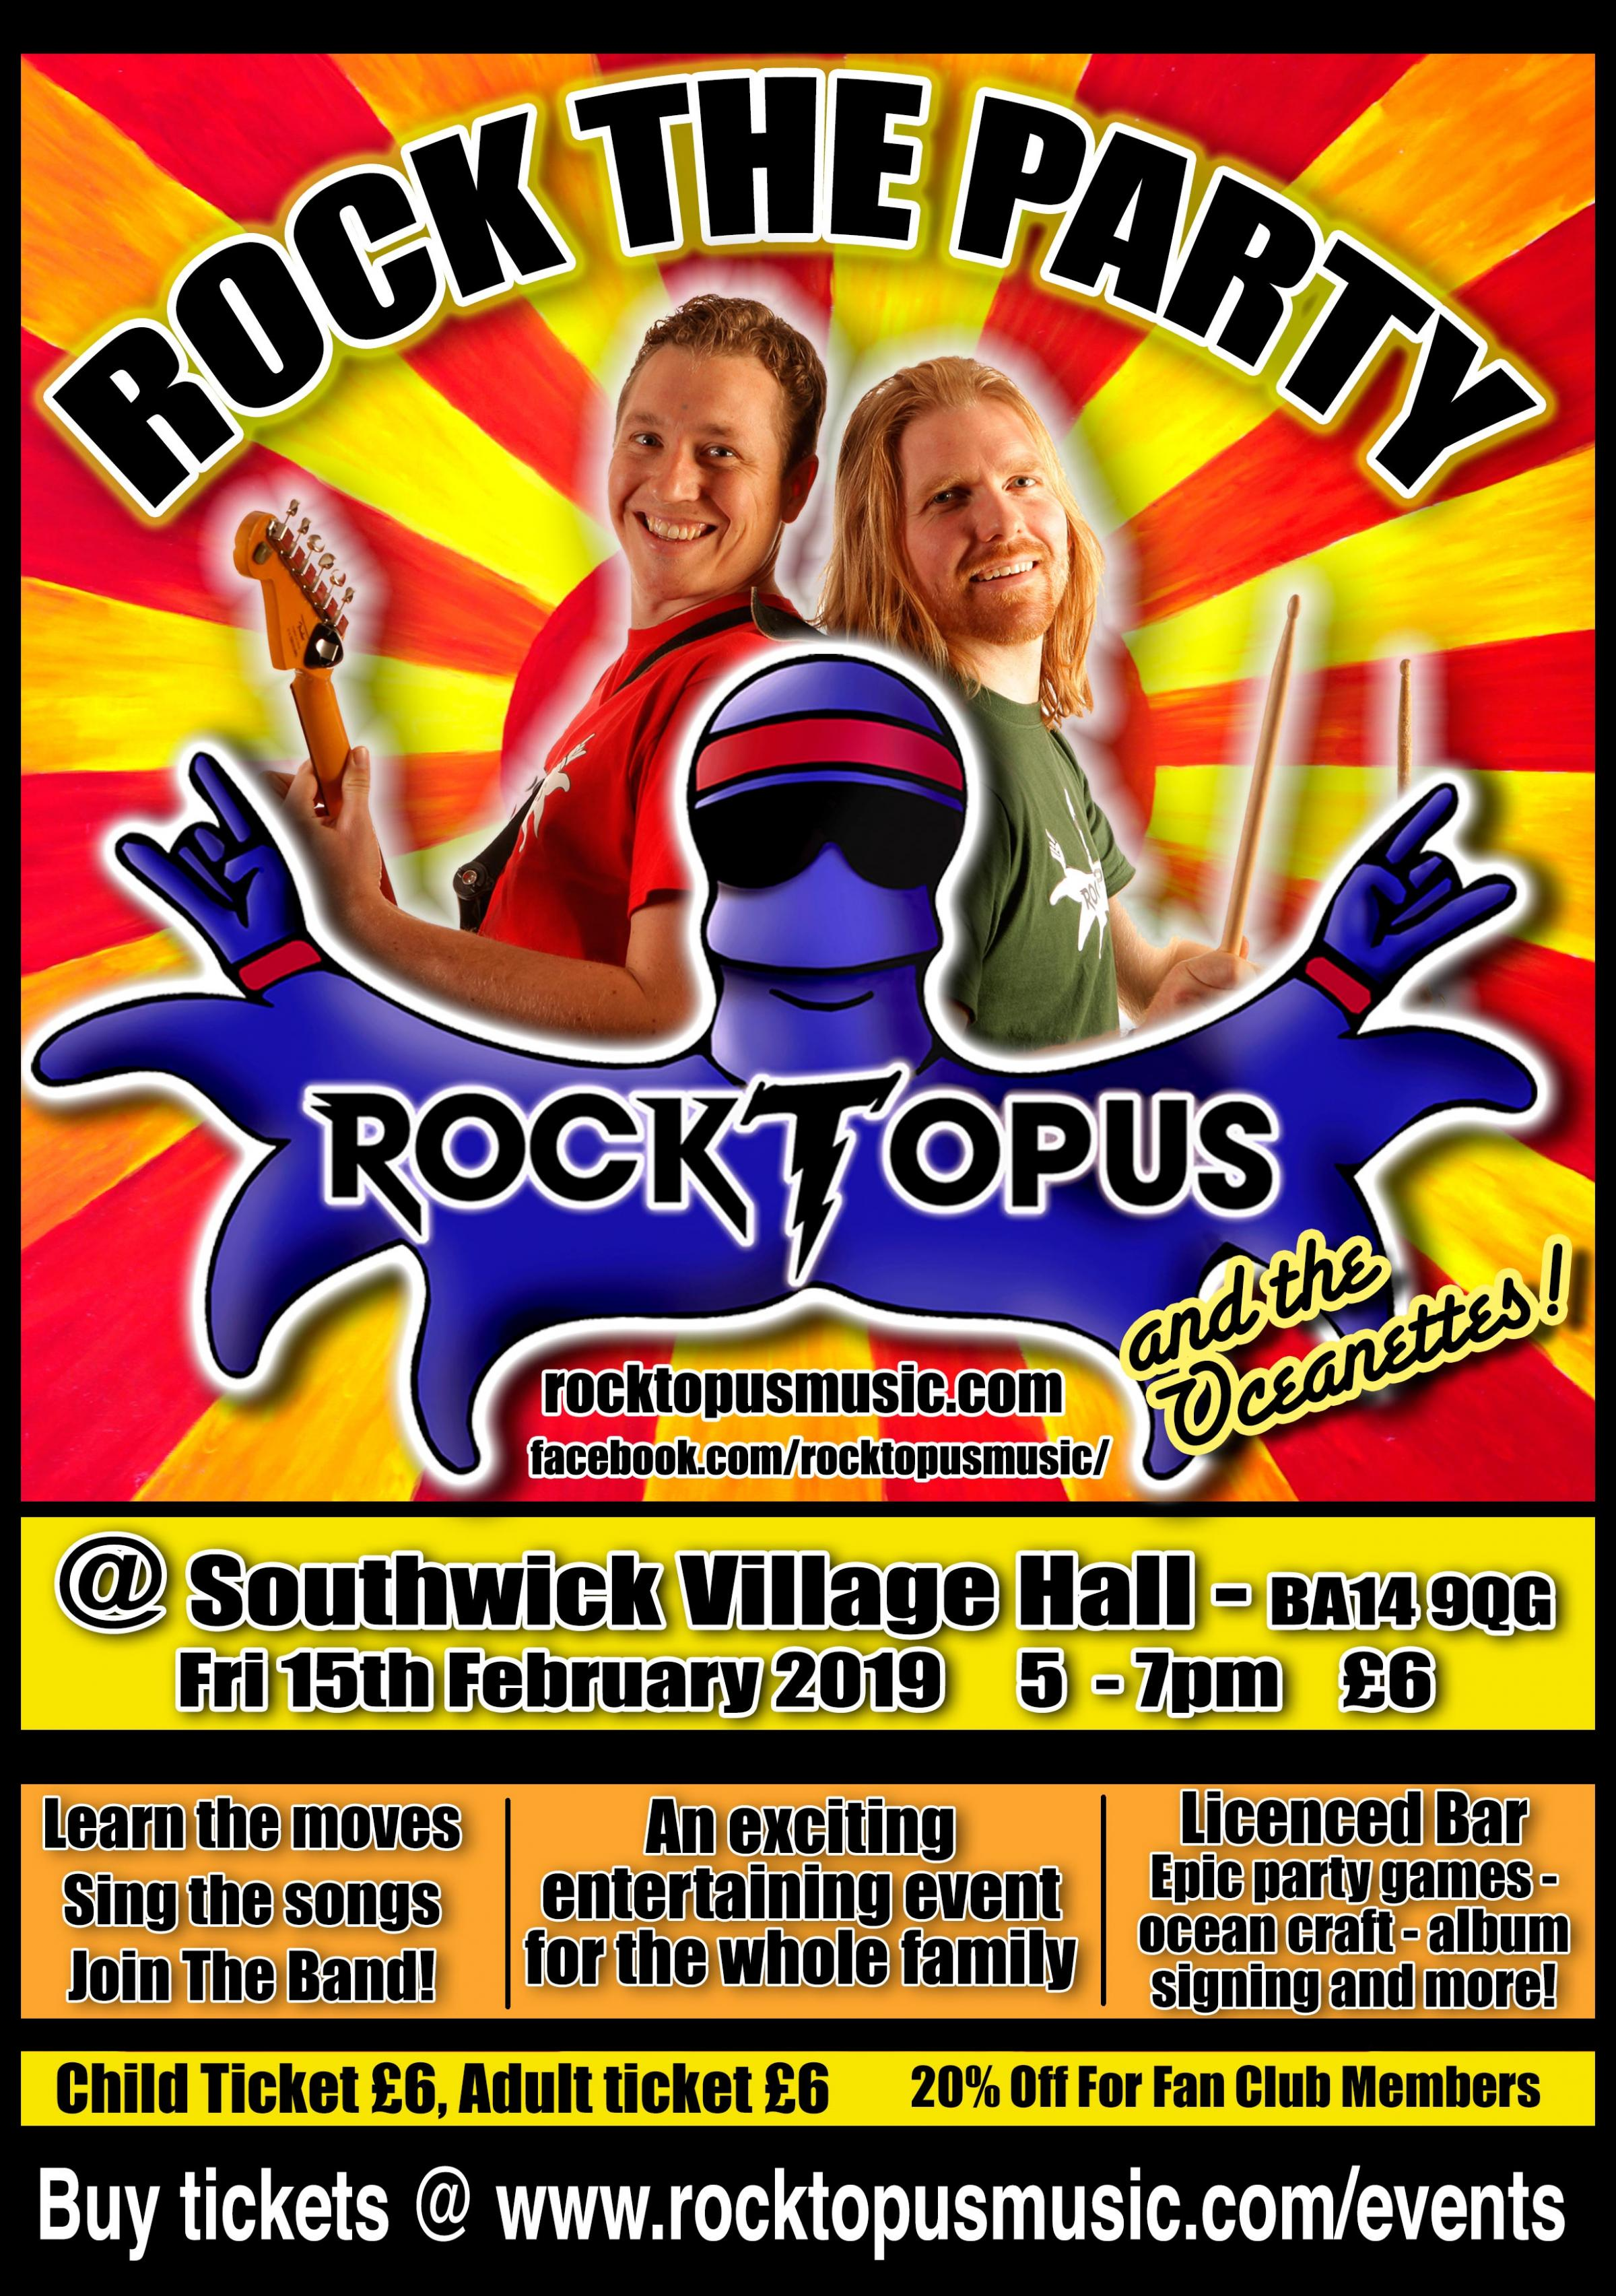 Rocktopus: Rock The Party: The Family Rock Show